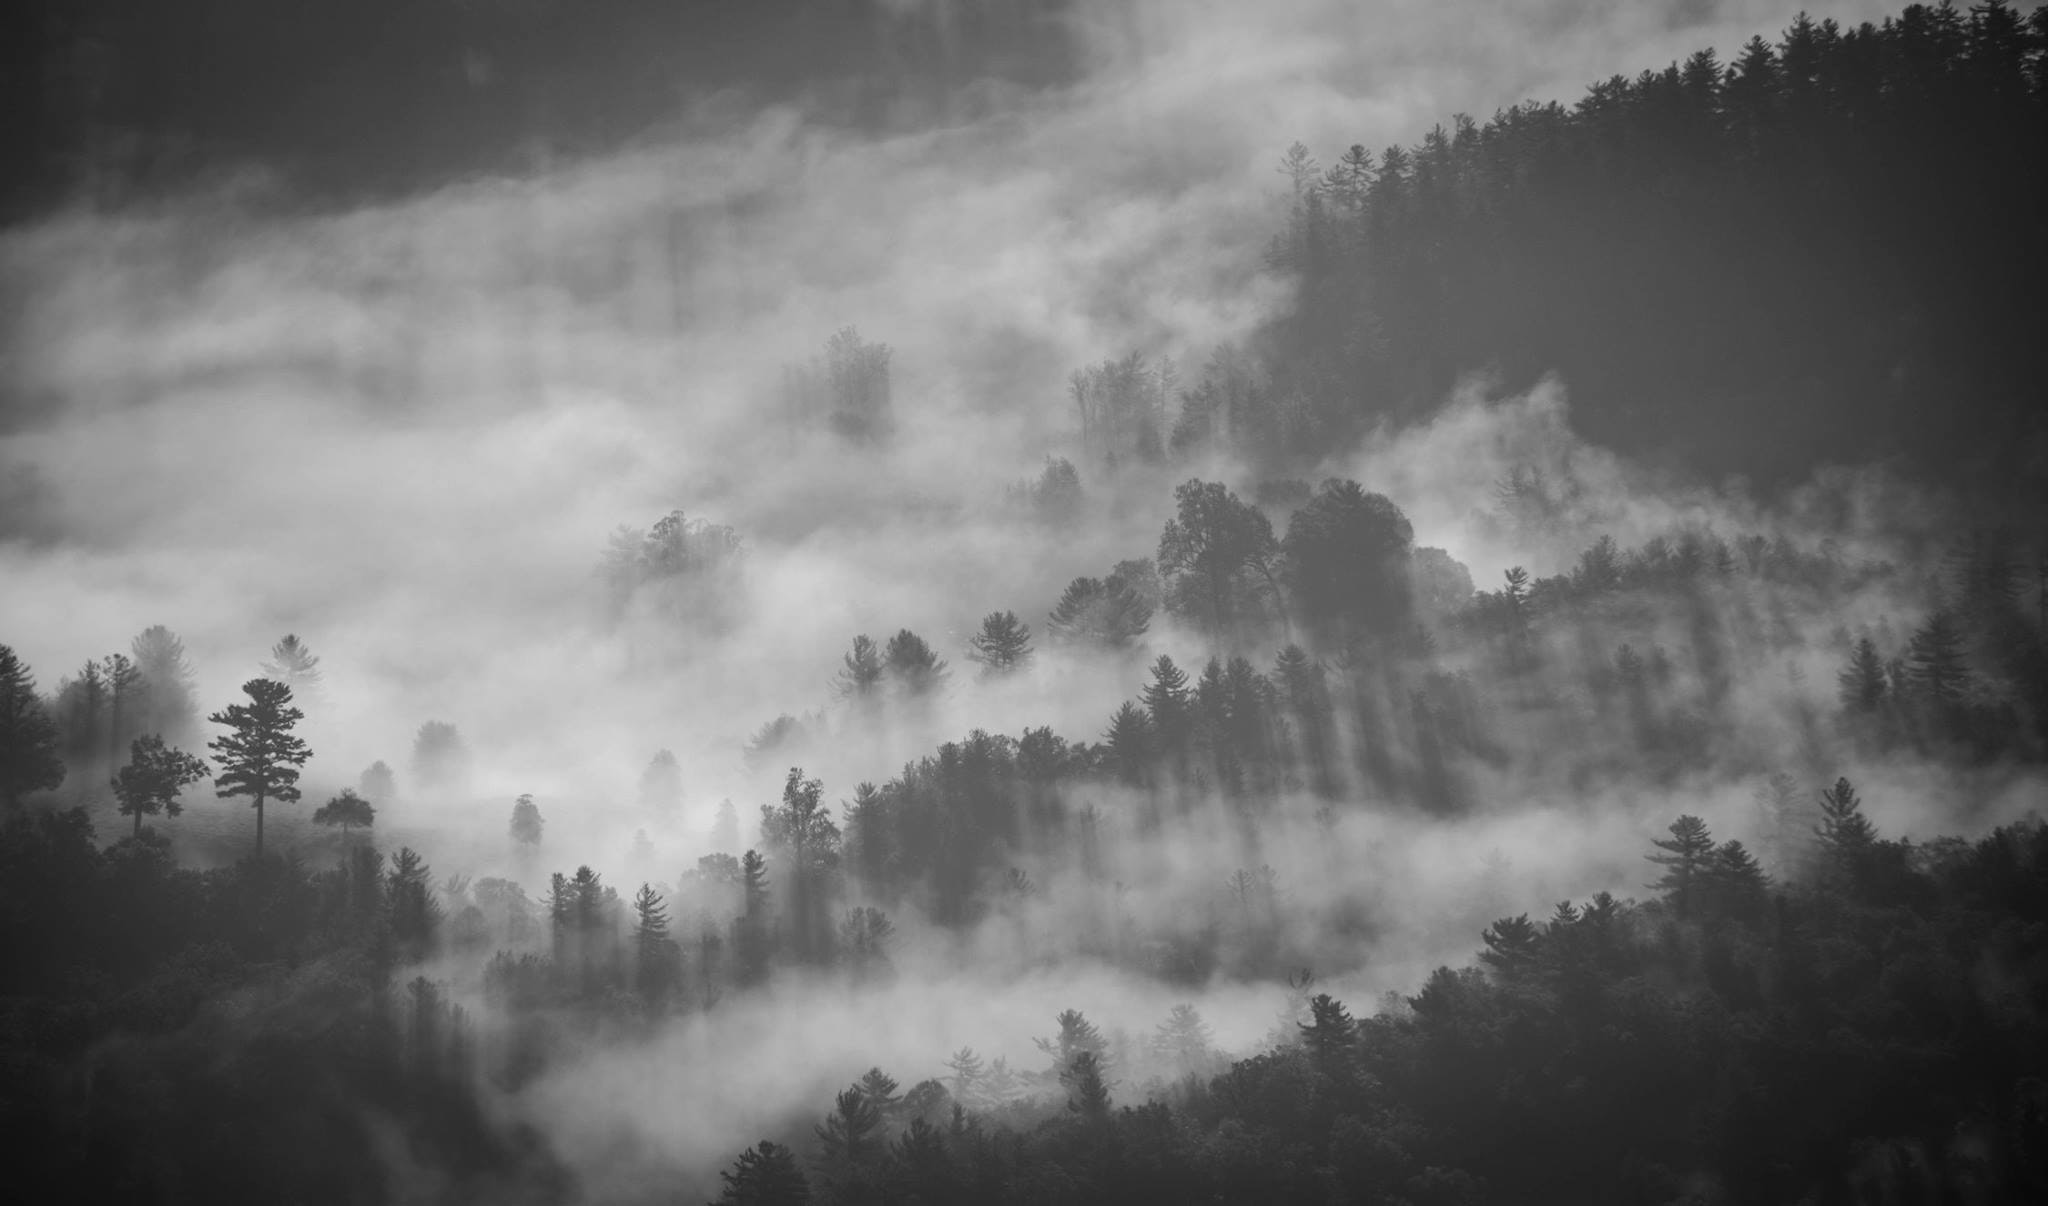 A black-and-white shot of trees enveloped in thick fog